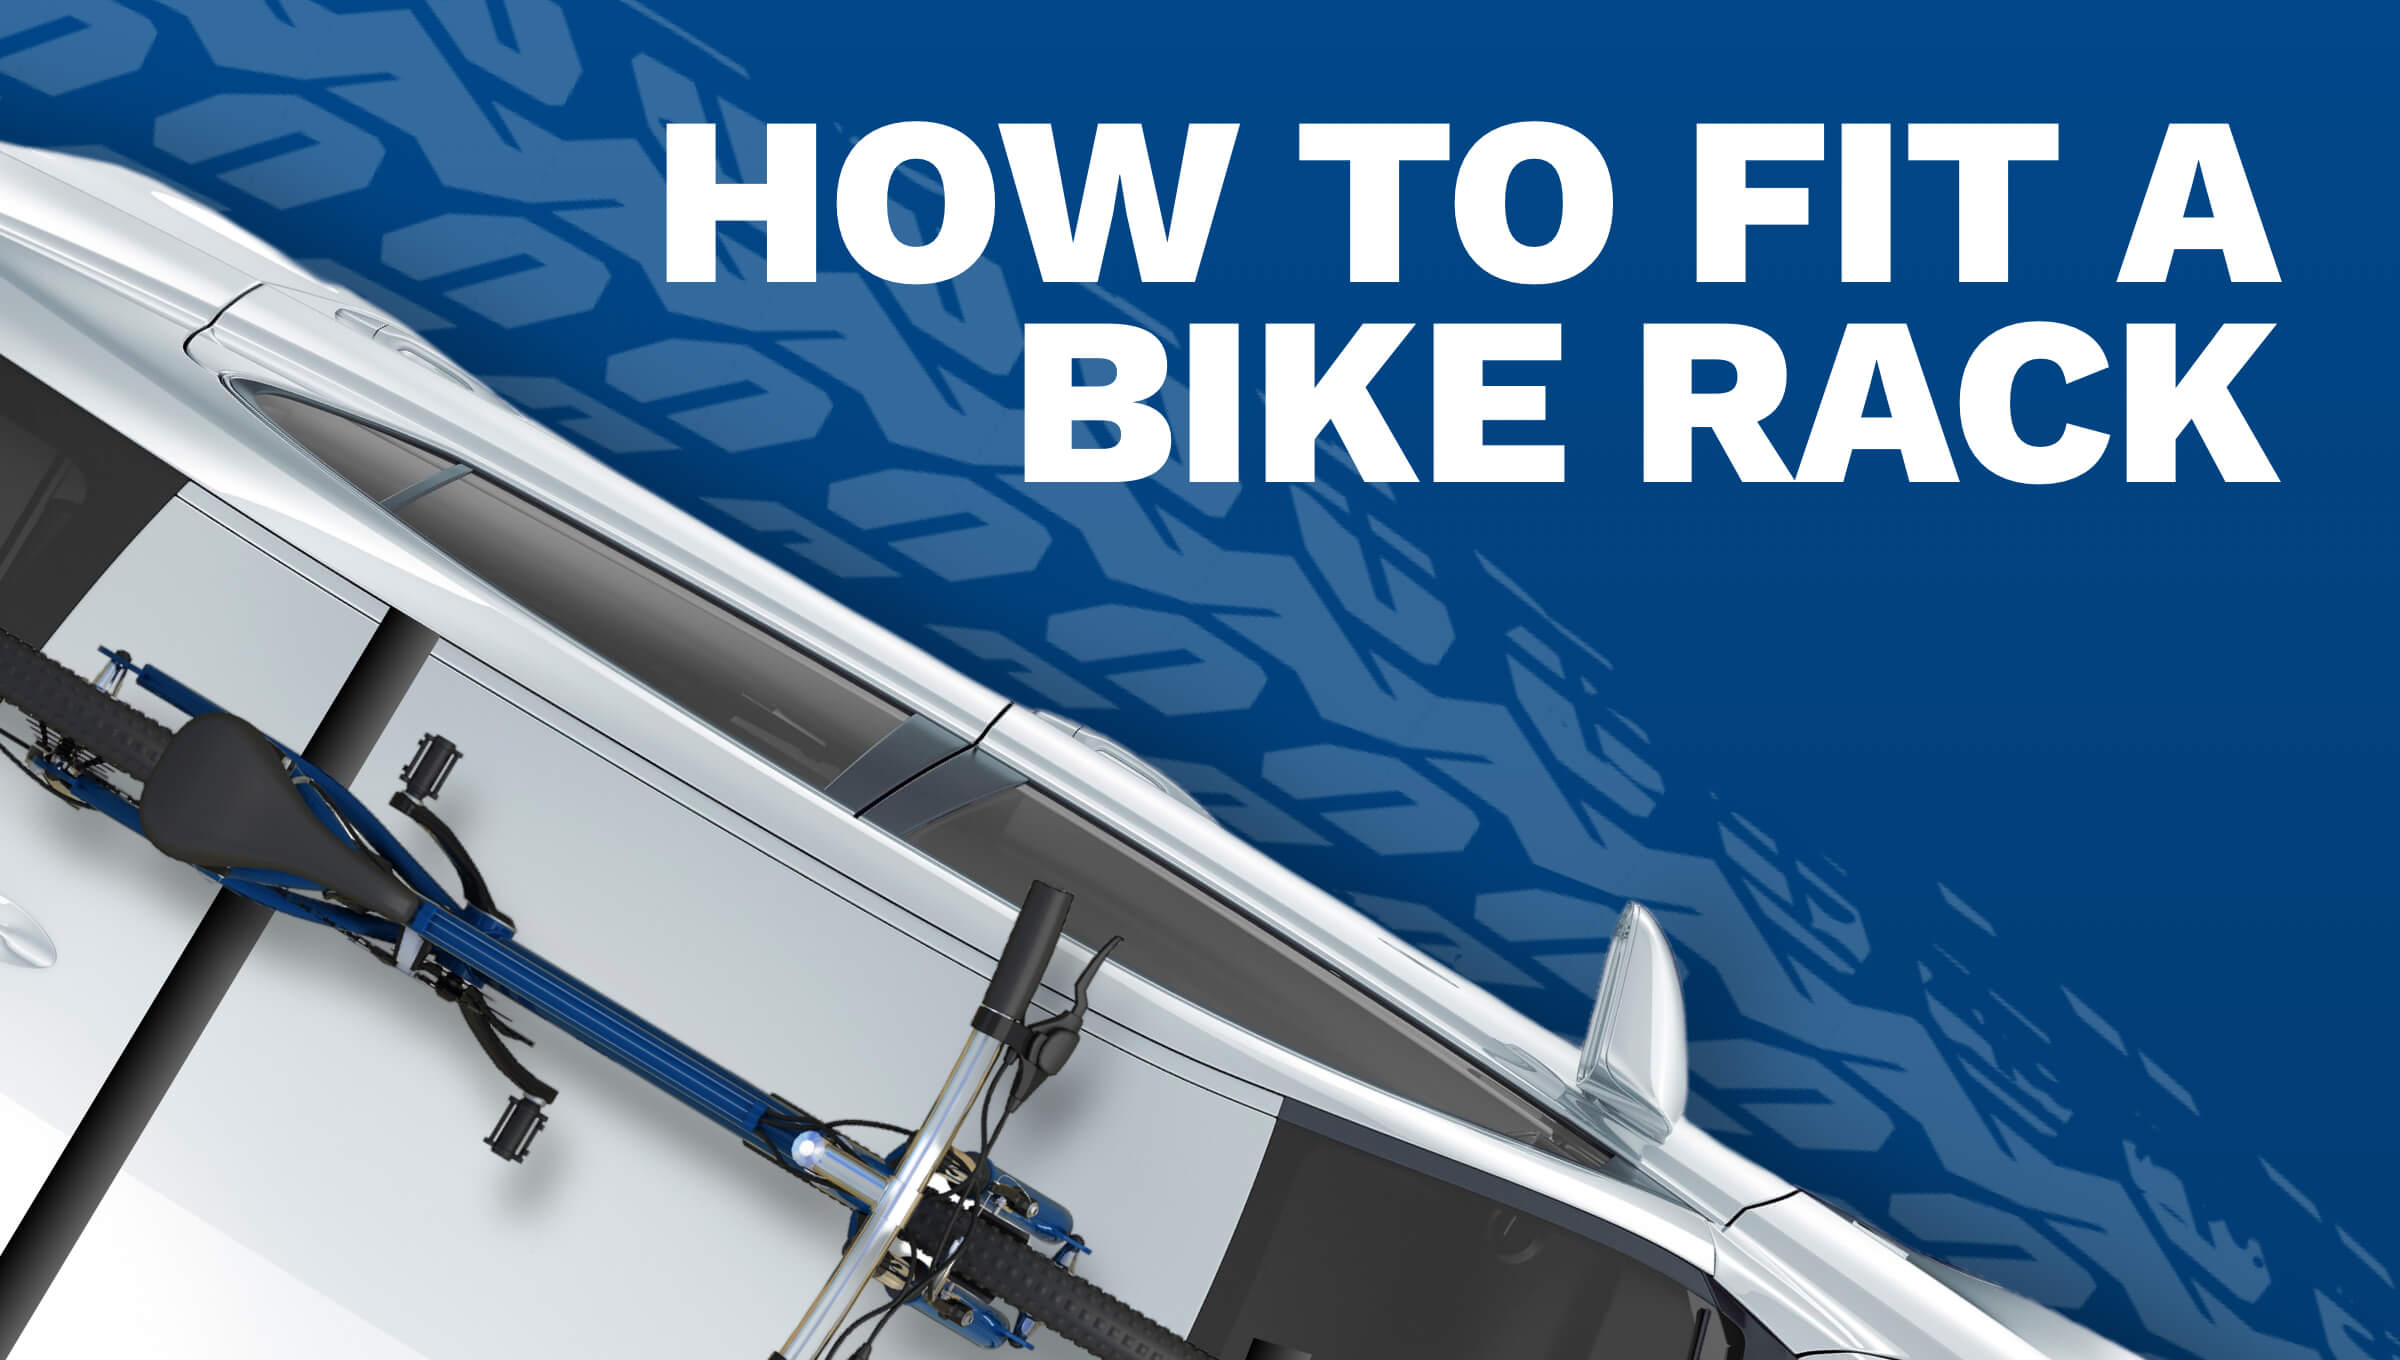 How to Fit a Bike Rack